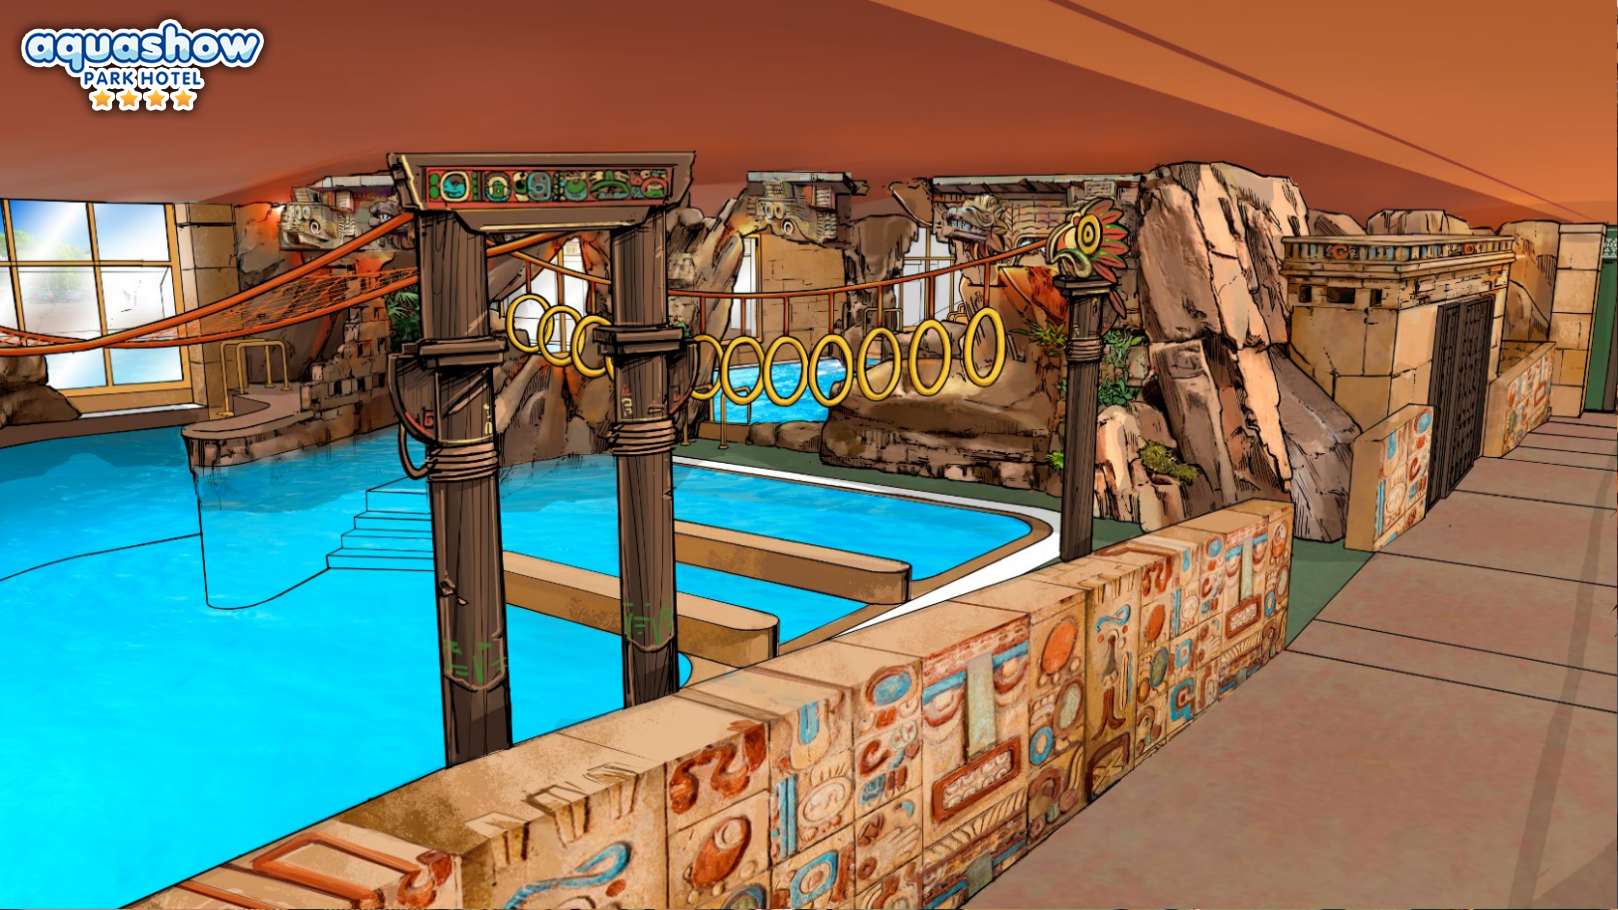 Aquashow Indoor Pool Advemture